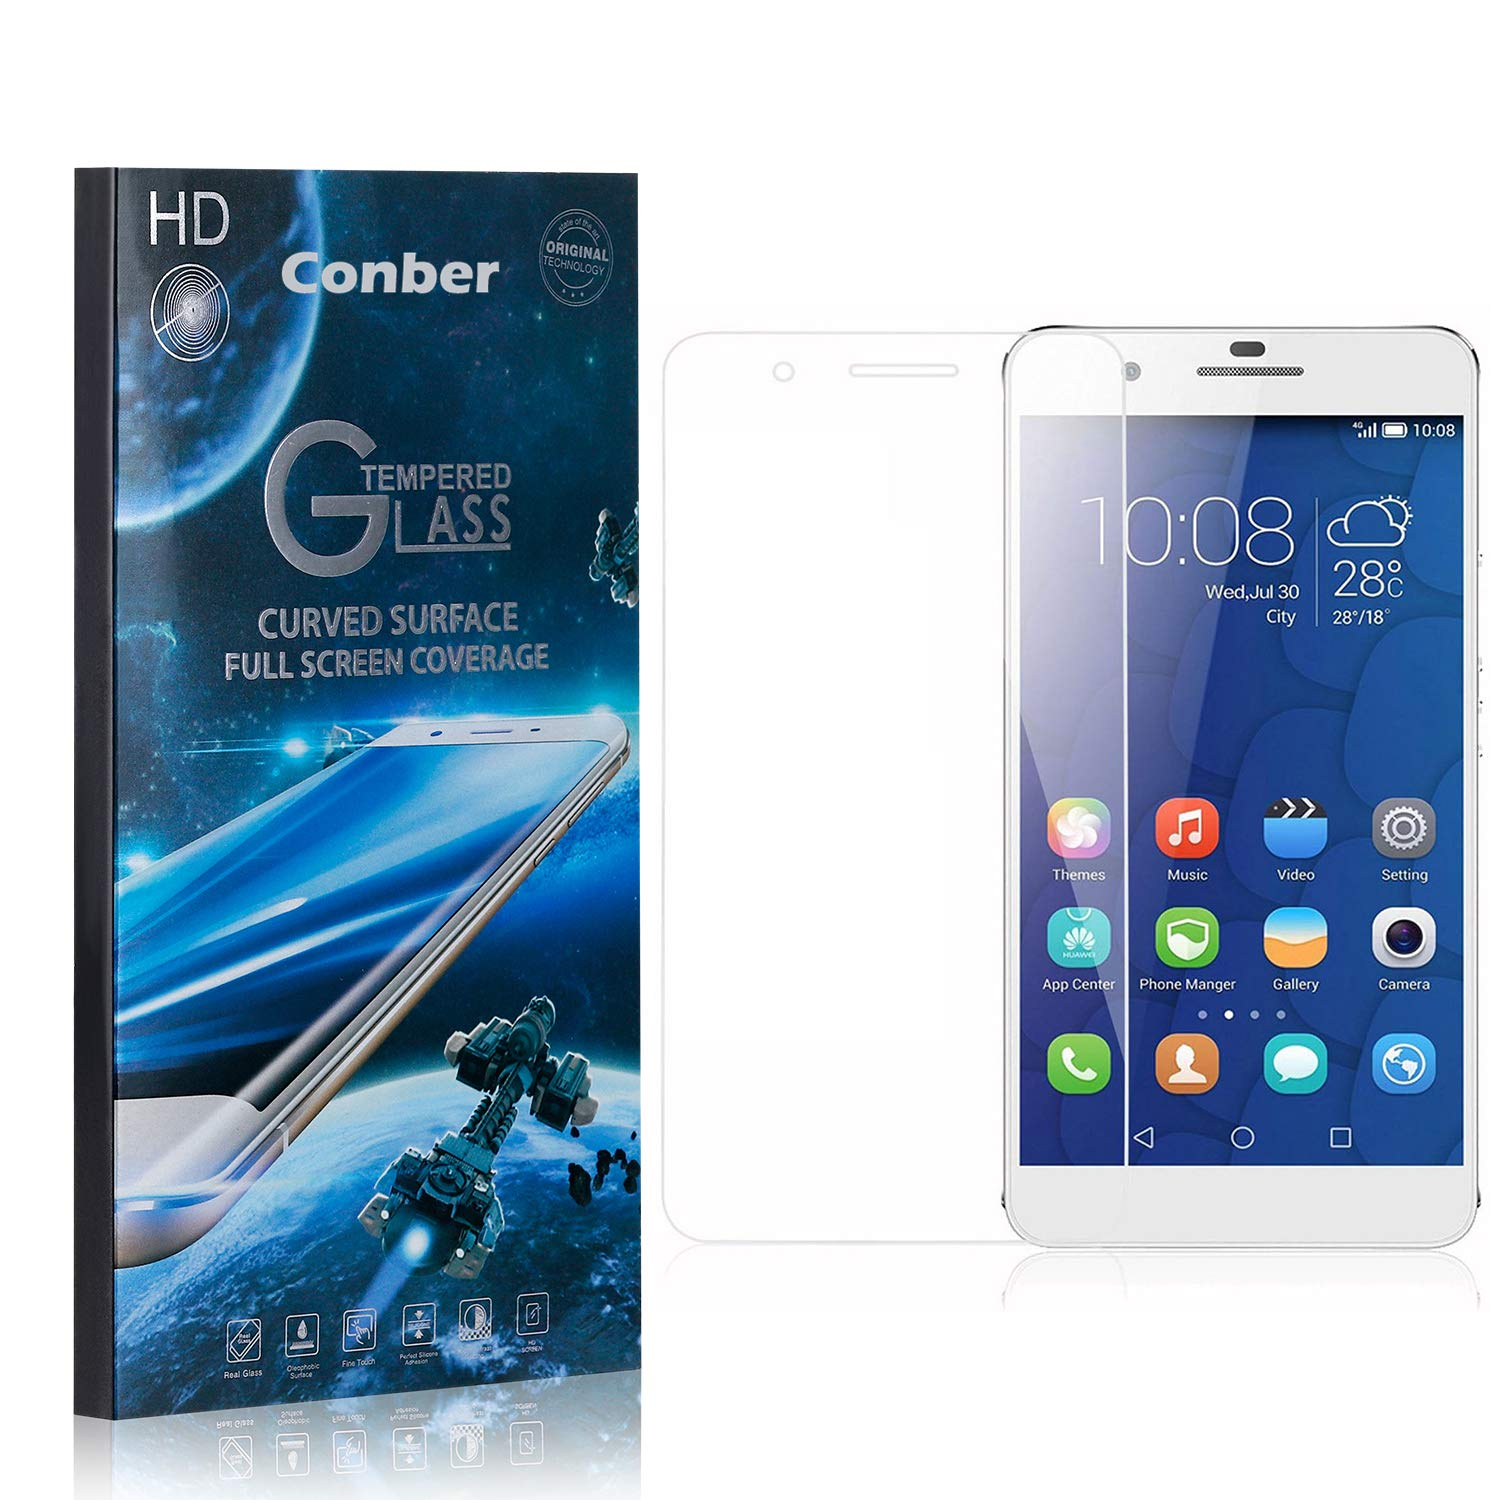 Conber 4 Pack Screen Online limited quality assurance product Protector for Lite Mate Scratc Huawei 9